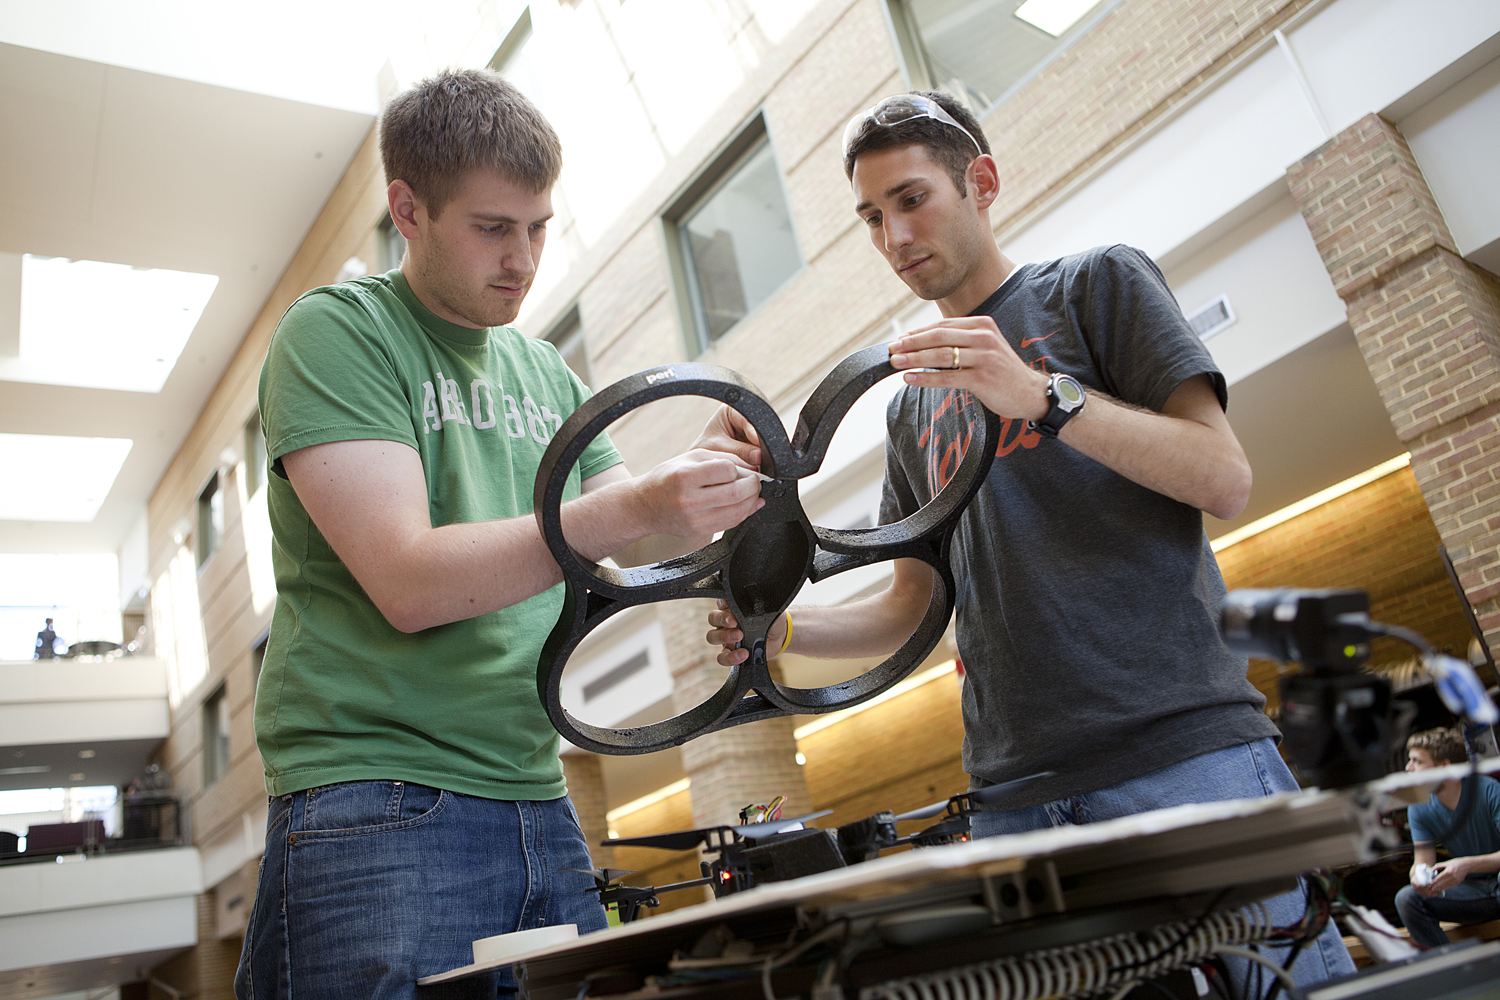 Noah Katzman, Stephan Chaves, Ryan Wolcott, and Nick Carlevaris-Bianco test autonomous quadrotor landings in the François-Xavier Bagnoud Building on the University of Michigan's North Campus.    The quadrotor, using its on-board camera, locates the moving Segway and automatically lands on it. This is done to simulate the autonomous landing of a flying vehicle on the deck of a Navy ship.    The Navy, through the Naval Engineering Education Center program, is looking to educate and hire students who are trained in the science and technology behind the next-generation of autonomous systems. This projects gives students hands-on experience with real robotic systems.